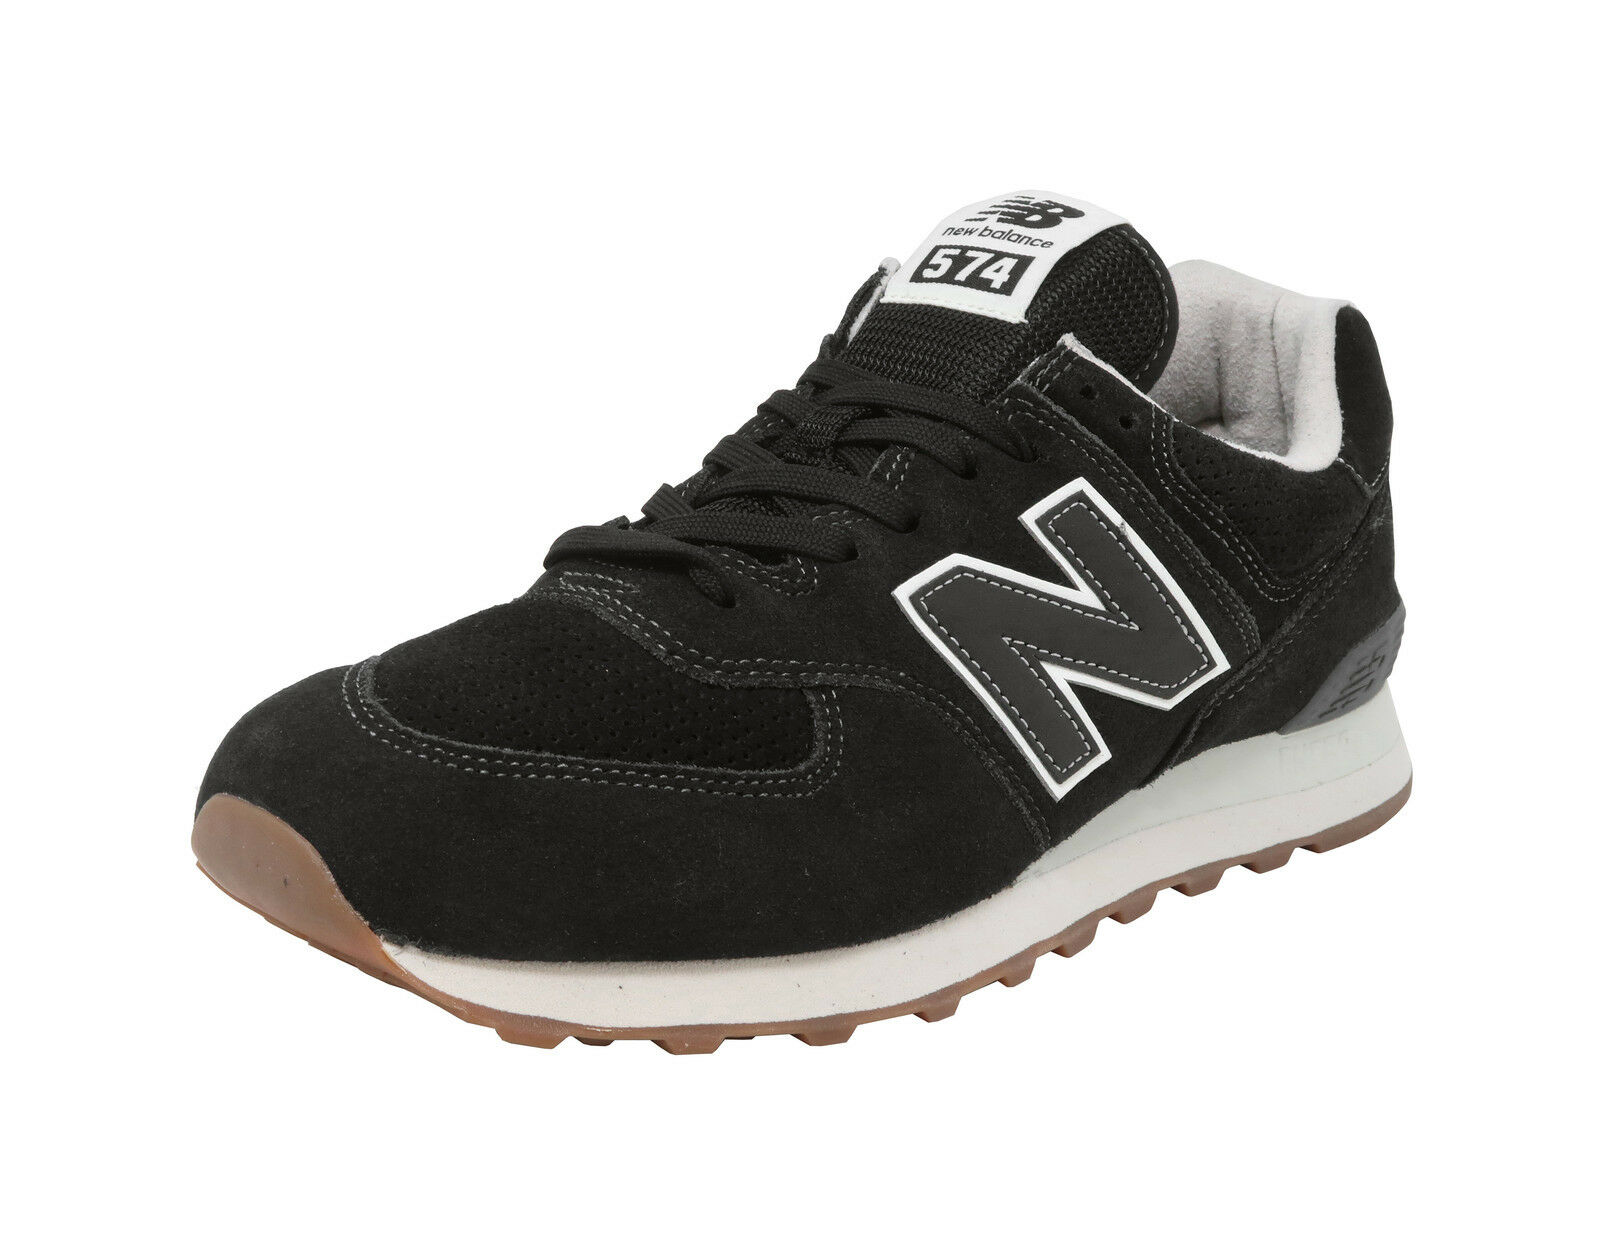 competitive price 96ae8 e08ad New Balance 574v2 Men's Classsic Running shoes ML574ESE ...